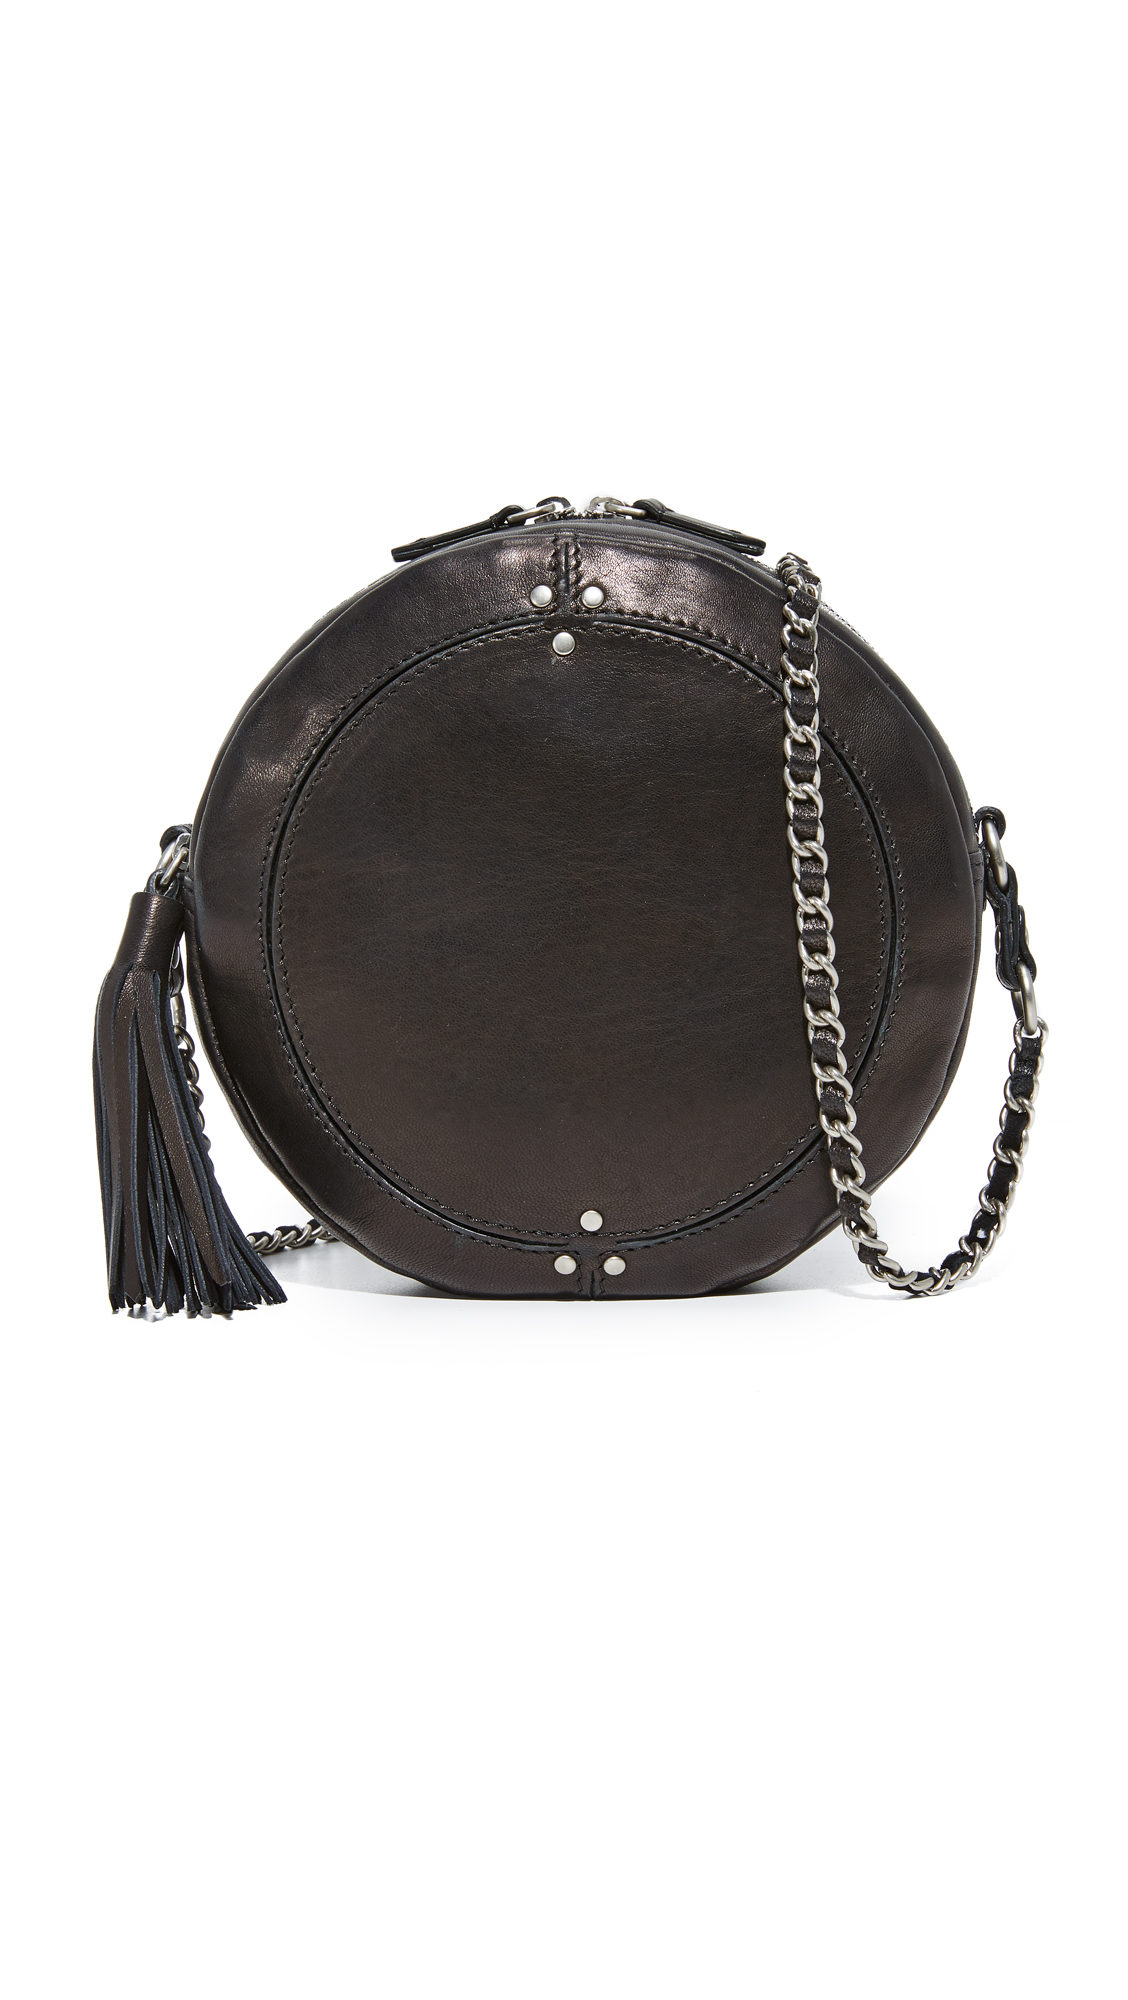 Jerome Dreyfuss Remi Circle Bag - Black